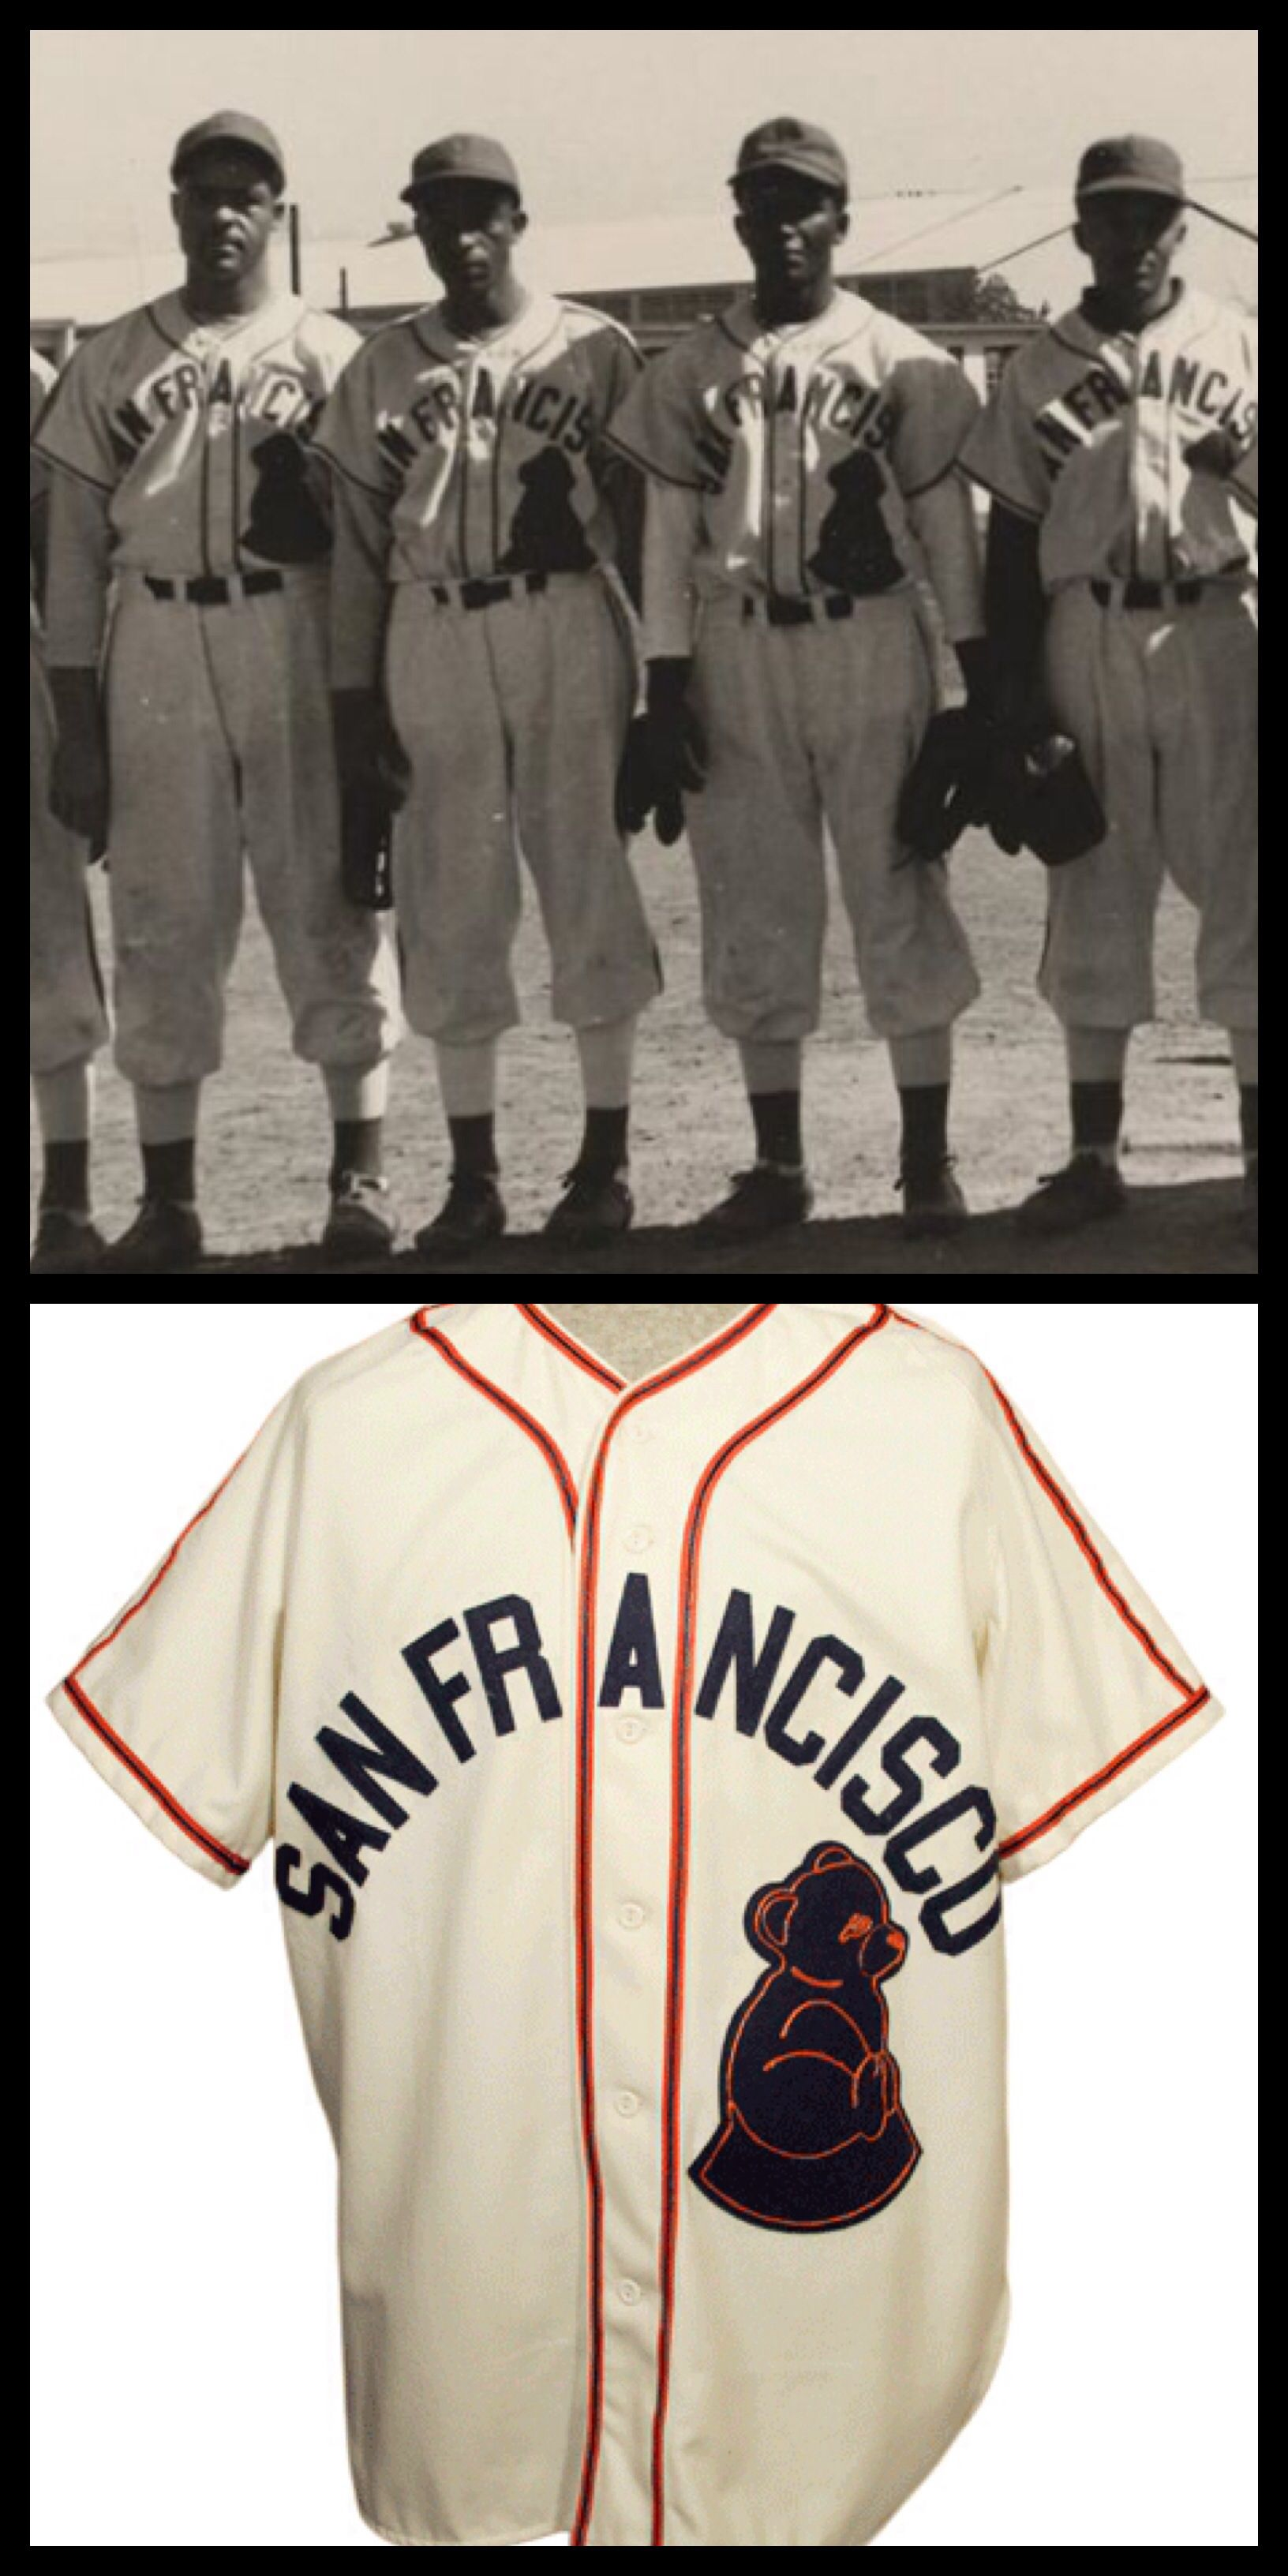 ba508d85158 1946 San Francisco Sea Lions (uniforms previously owned by a team called  the Cubs)